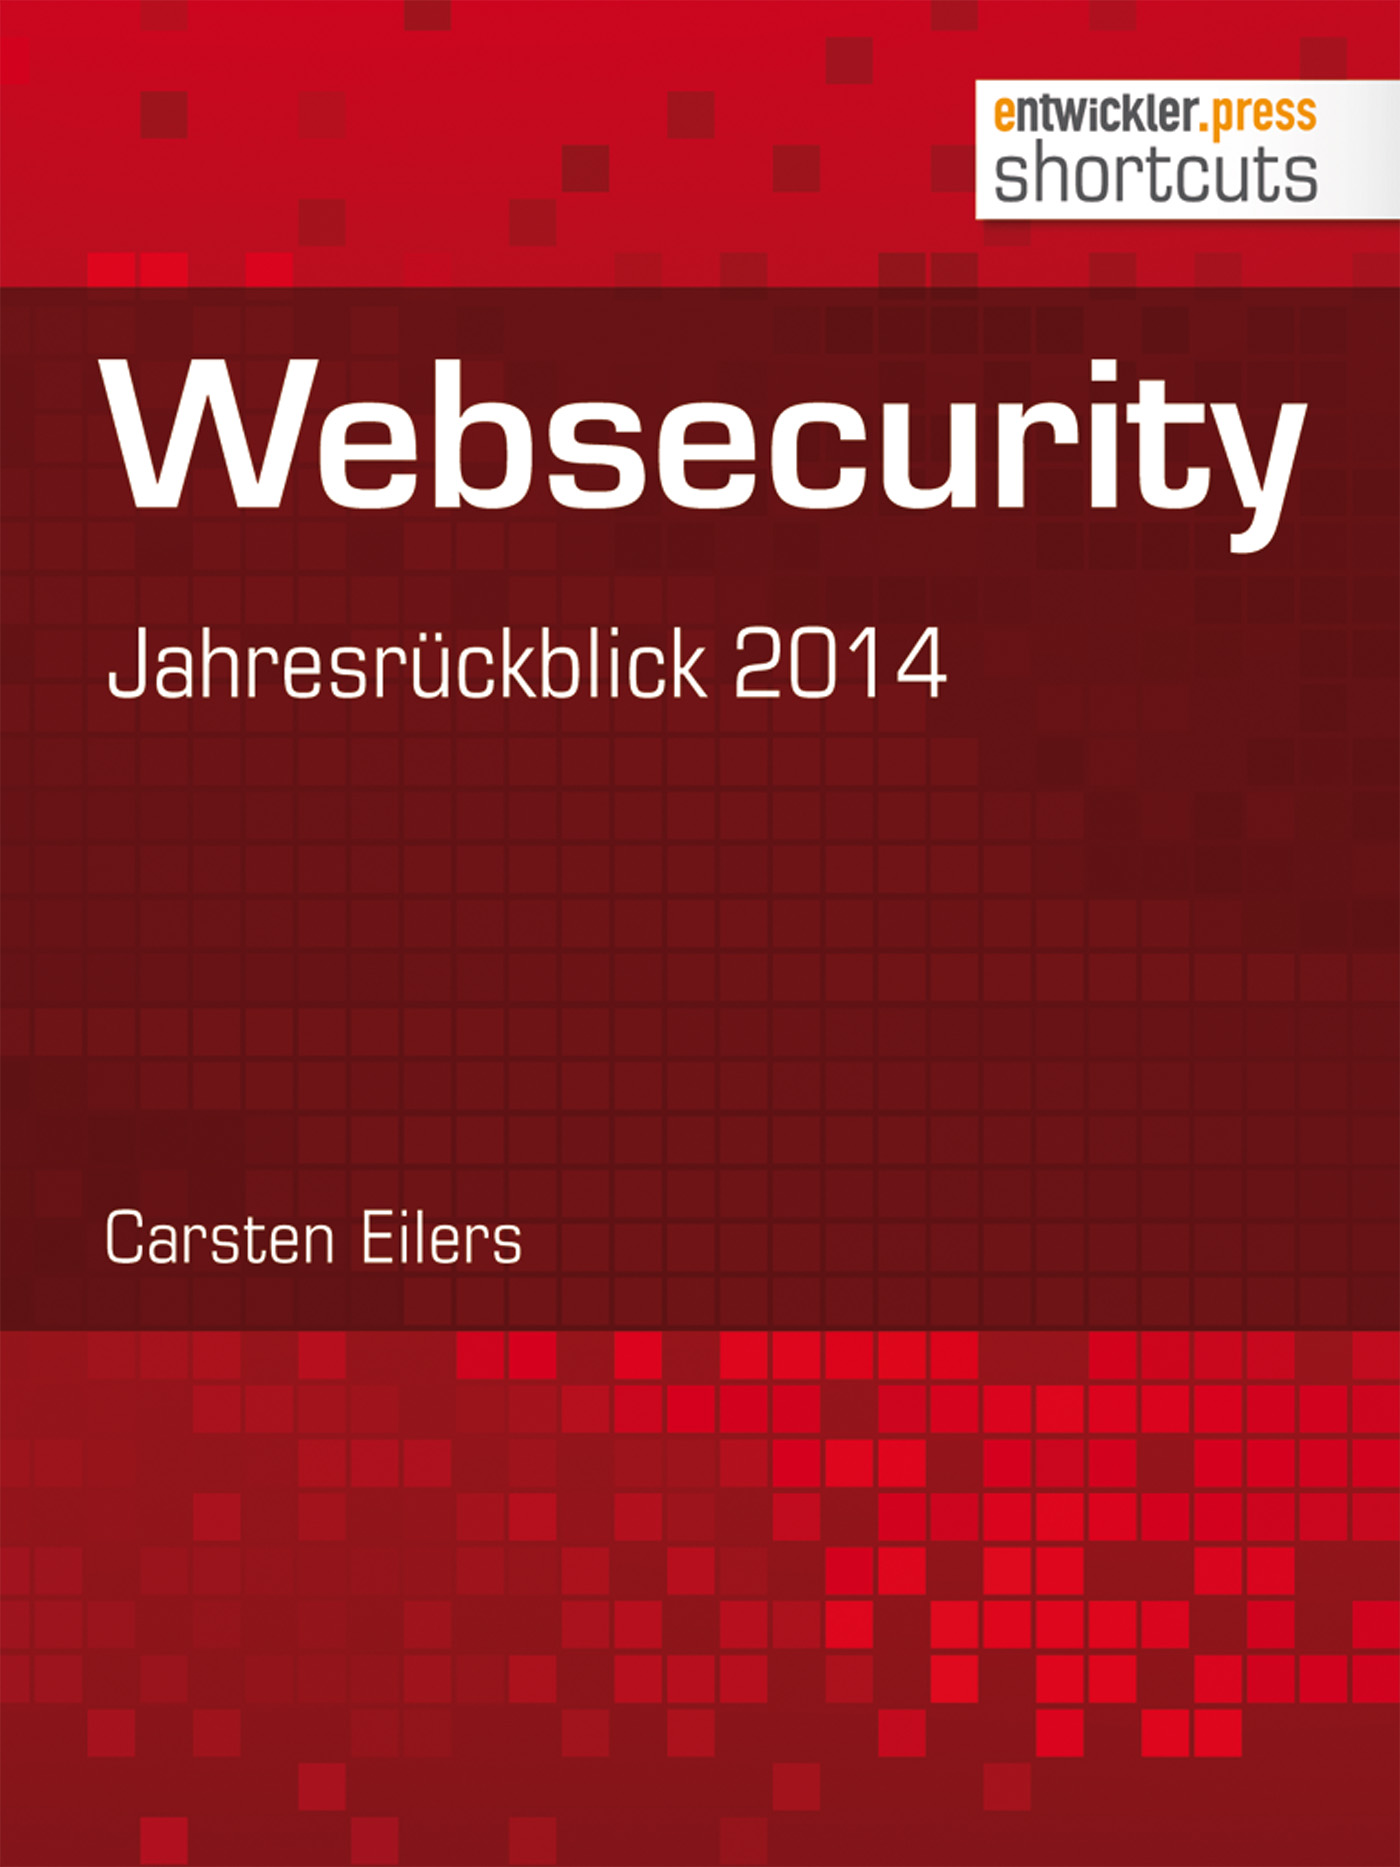 Carsten Eilers Websecurity margaret setje eilers hinter den kulissen